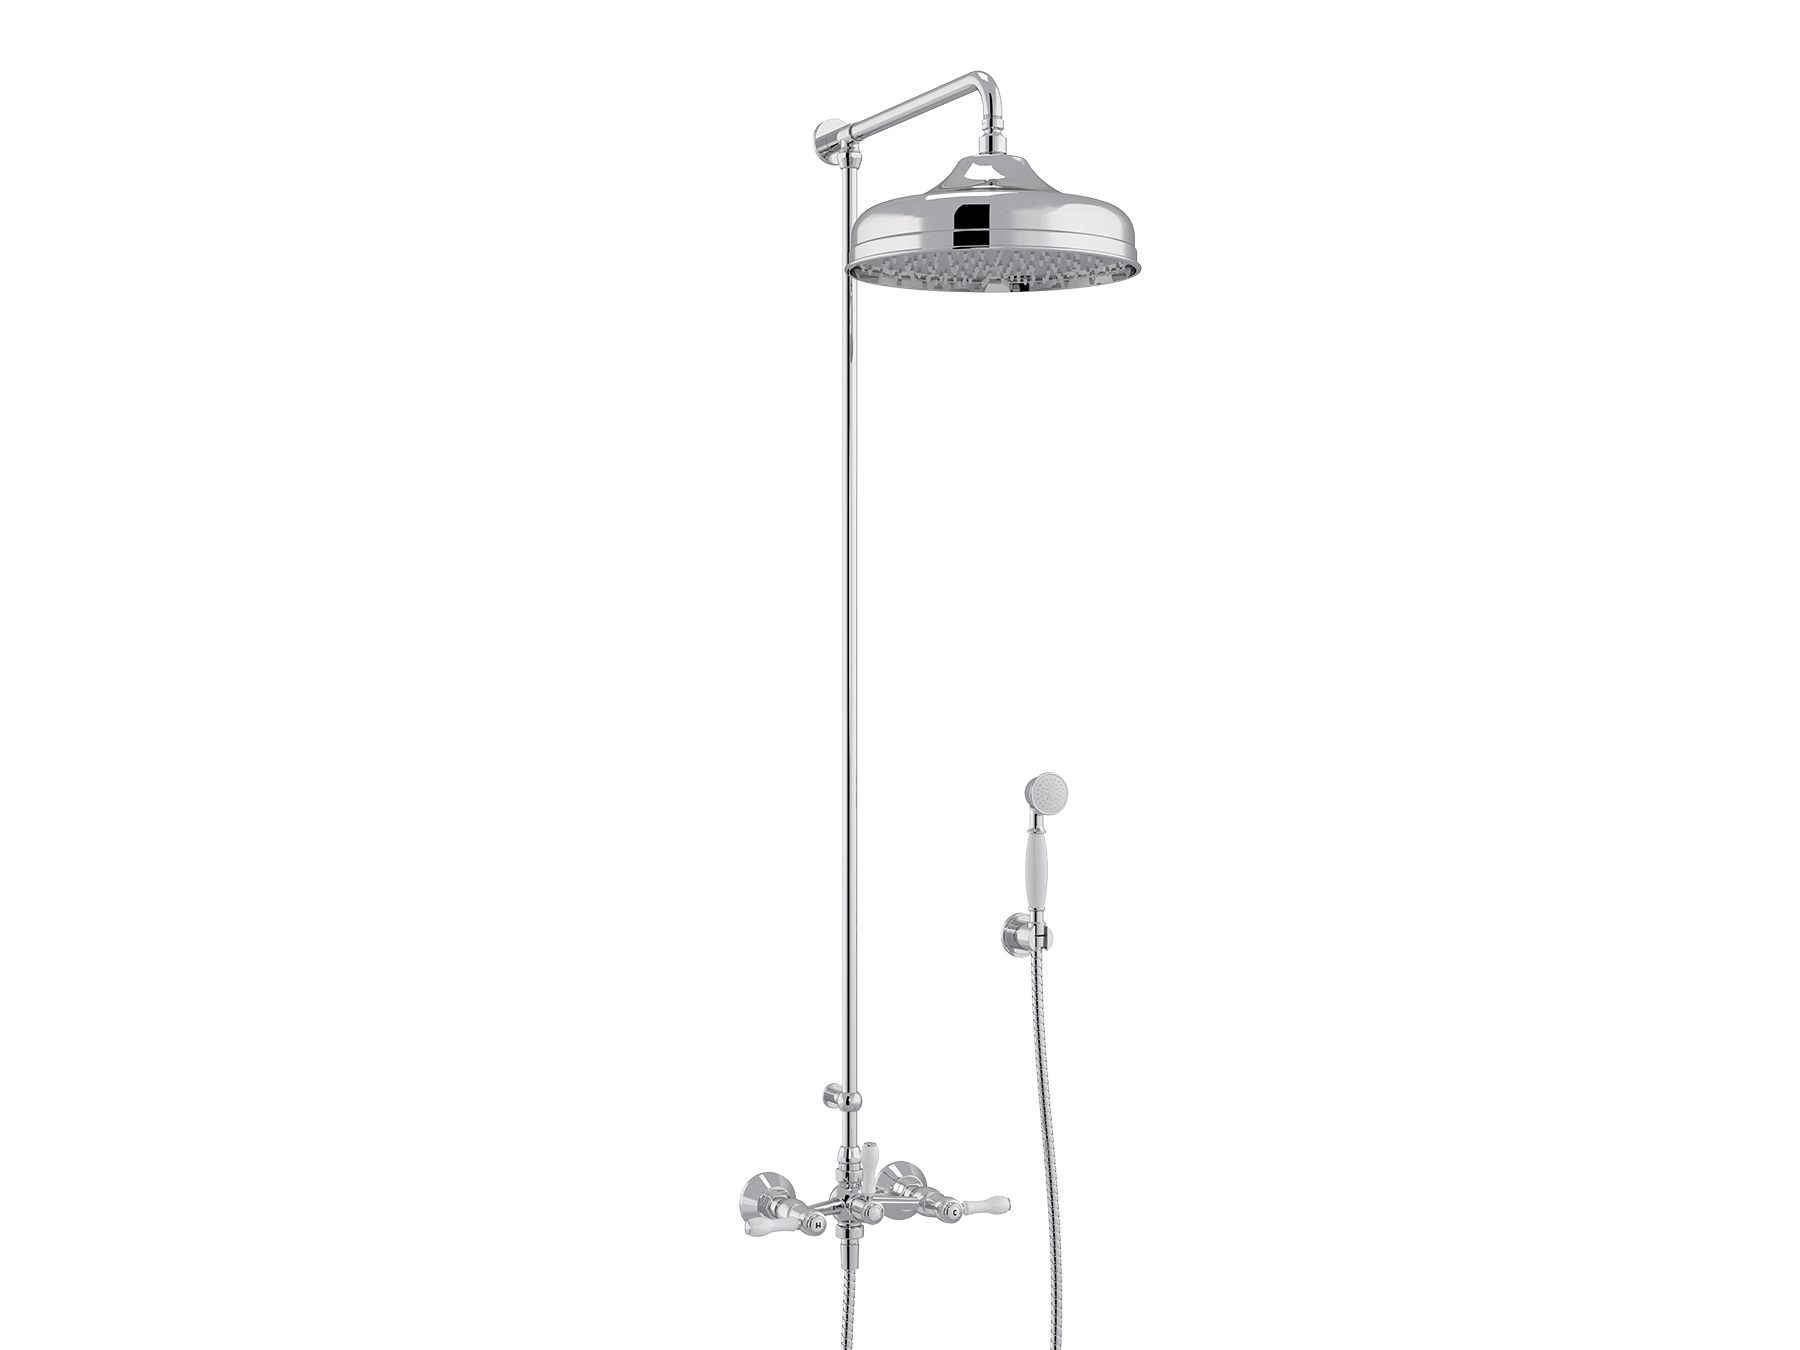 Set shower mixer, Ø300mm and handshower 1935.--.66